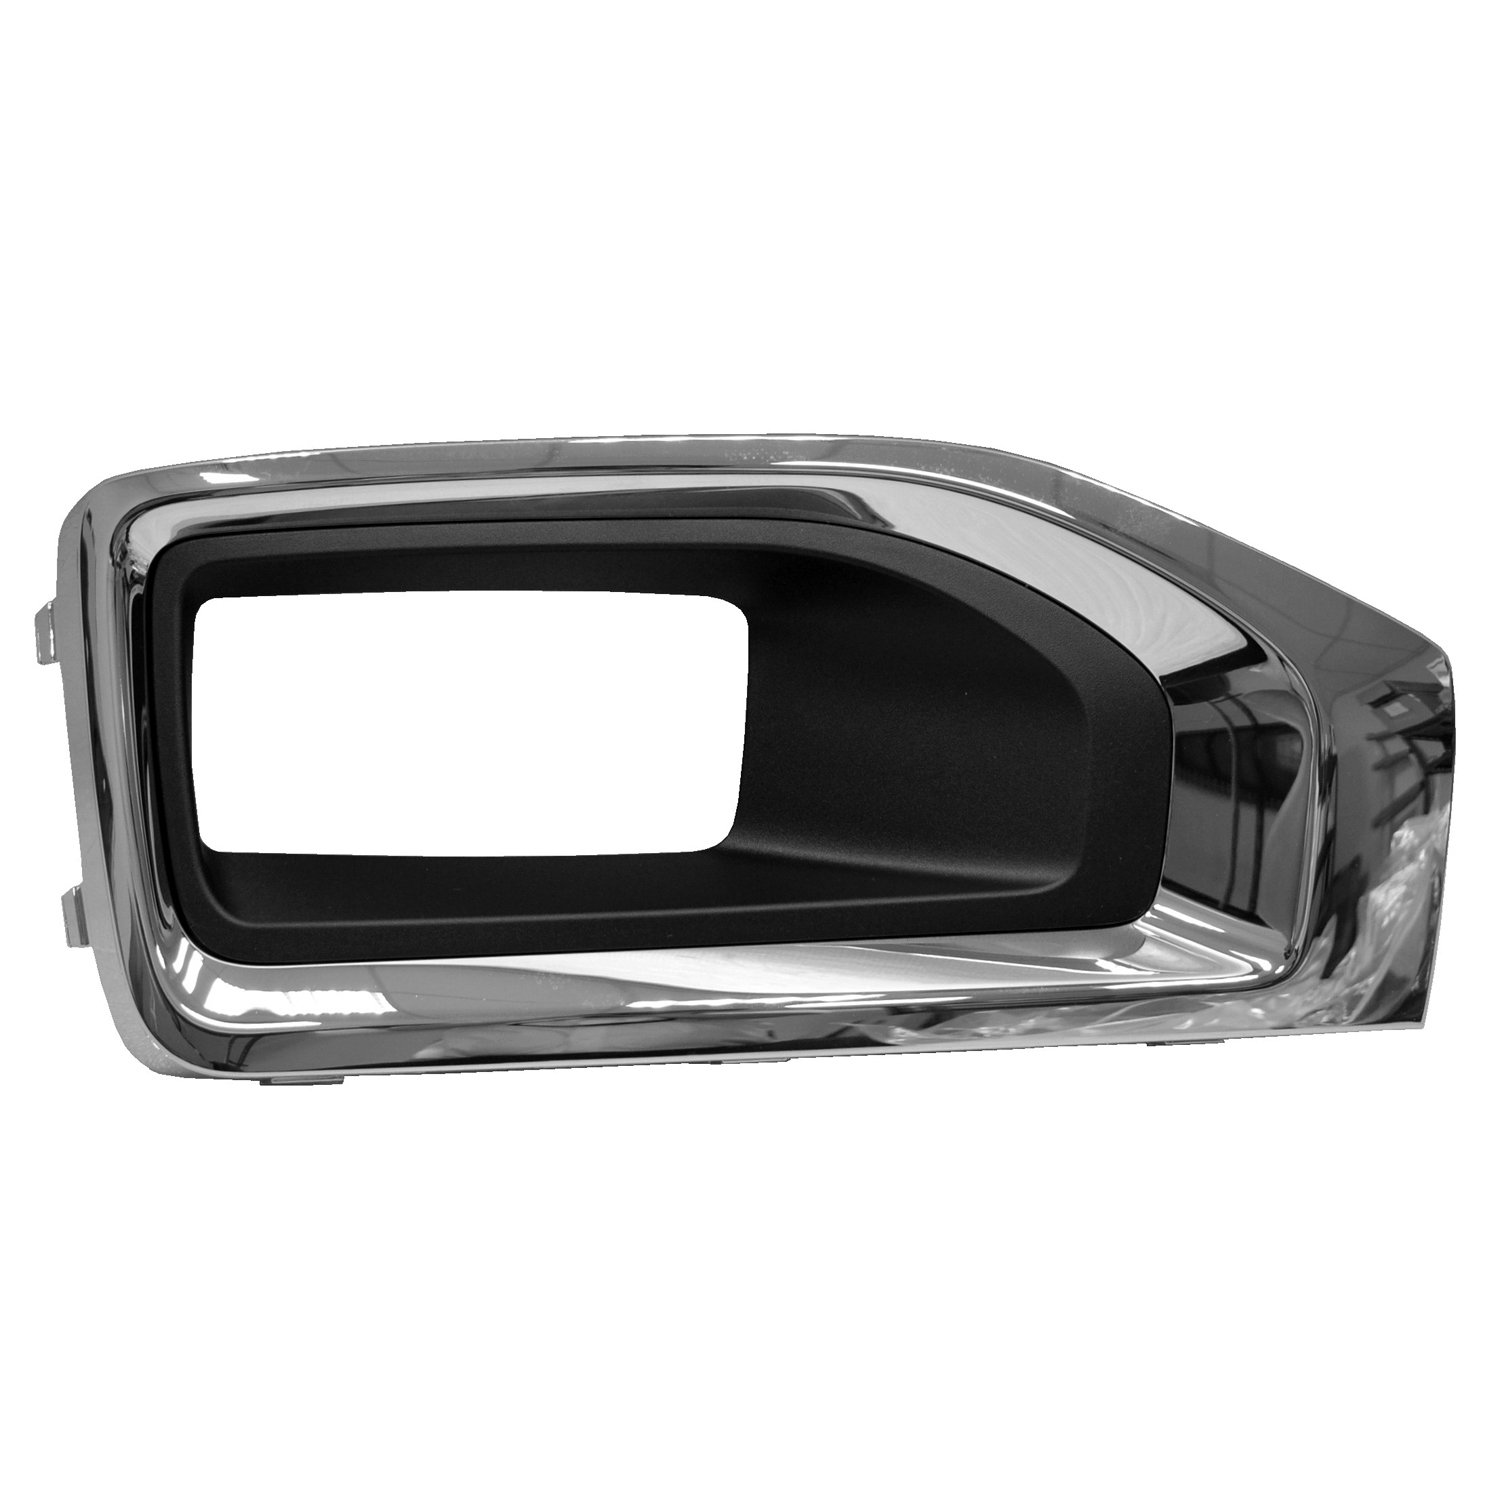 CPP Replacement Fog Light Bezel GM1039187 for 2015-2017 GMC Yukon, Yukon XL